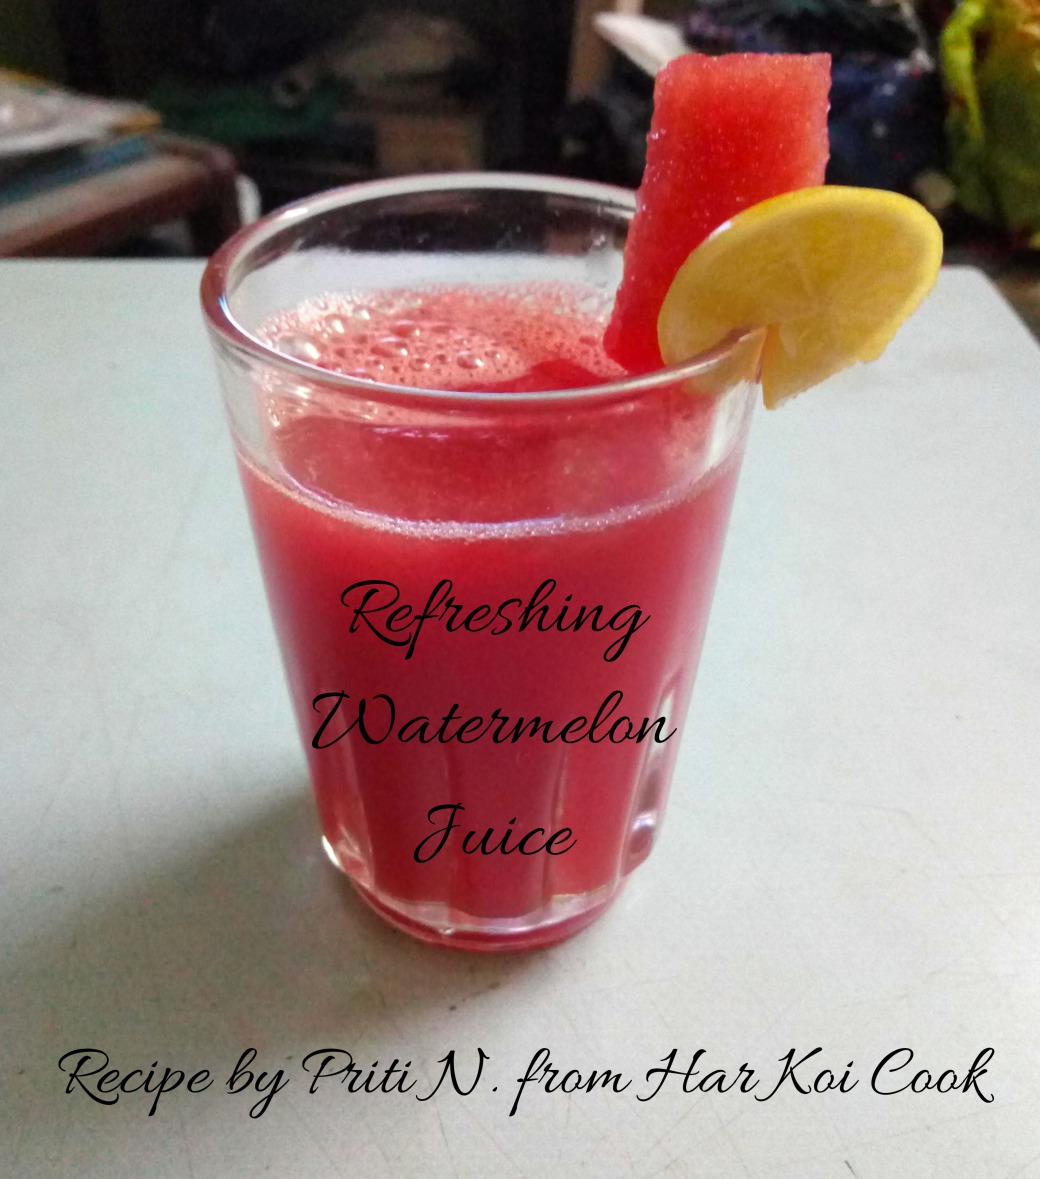 refreshing_watermelon_juice_priti_n_hkc